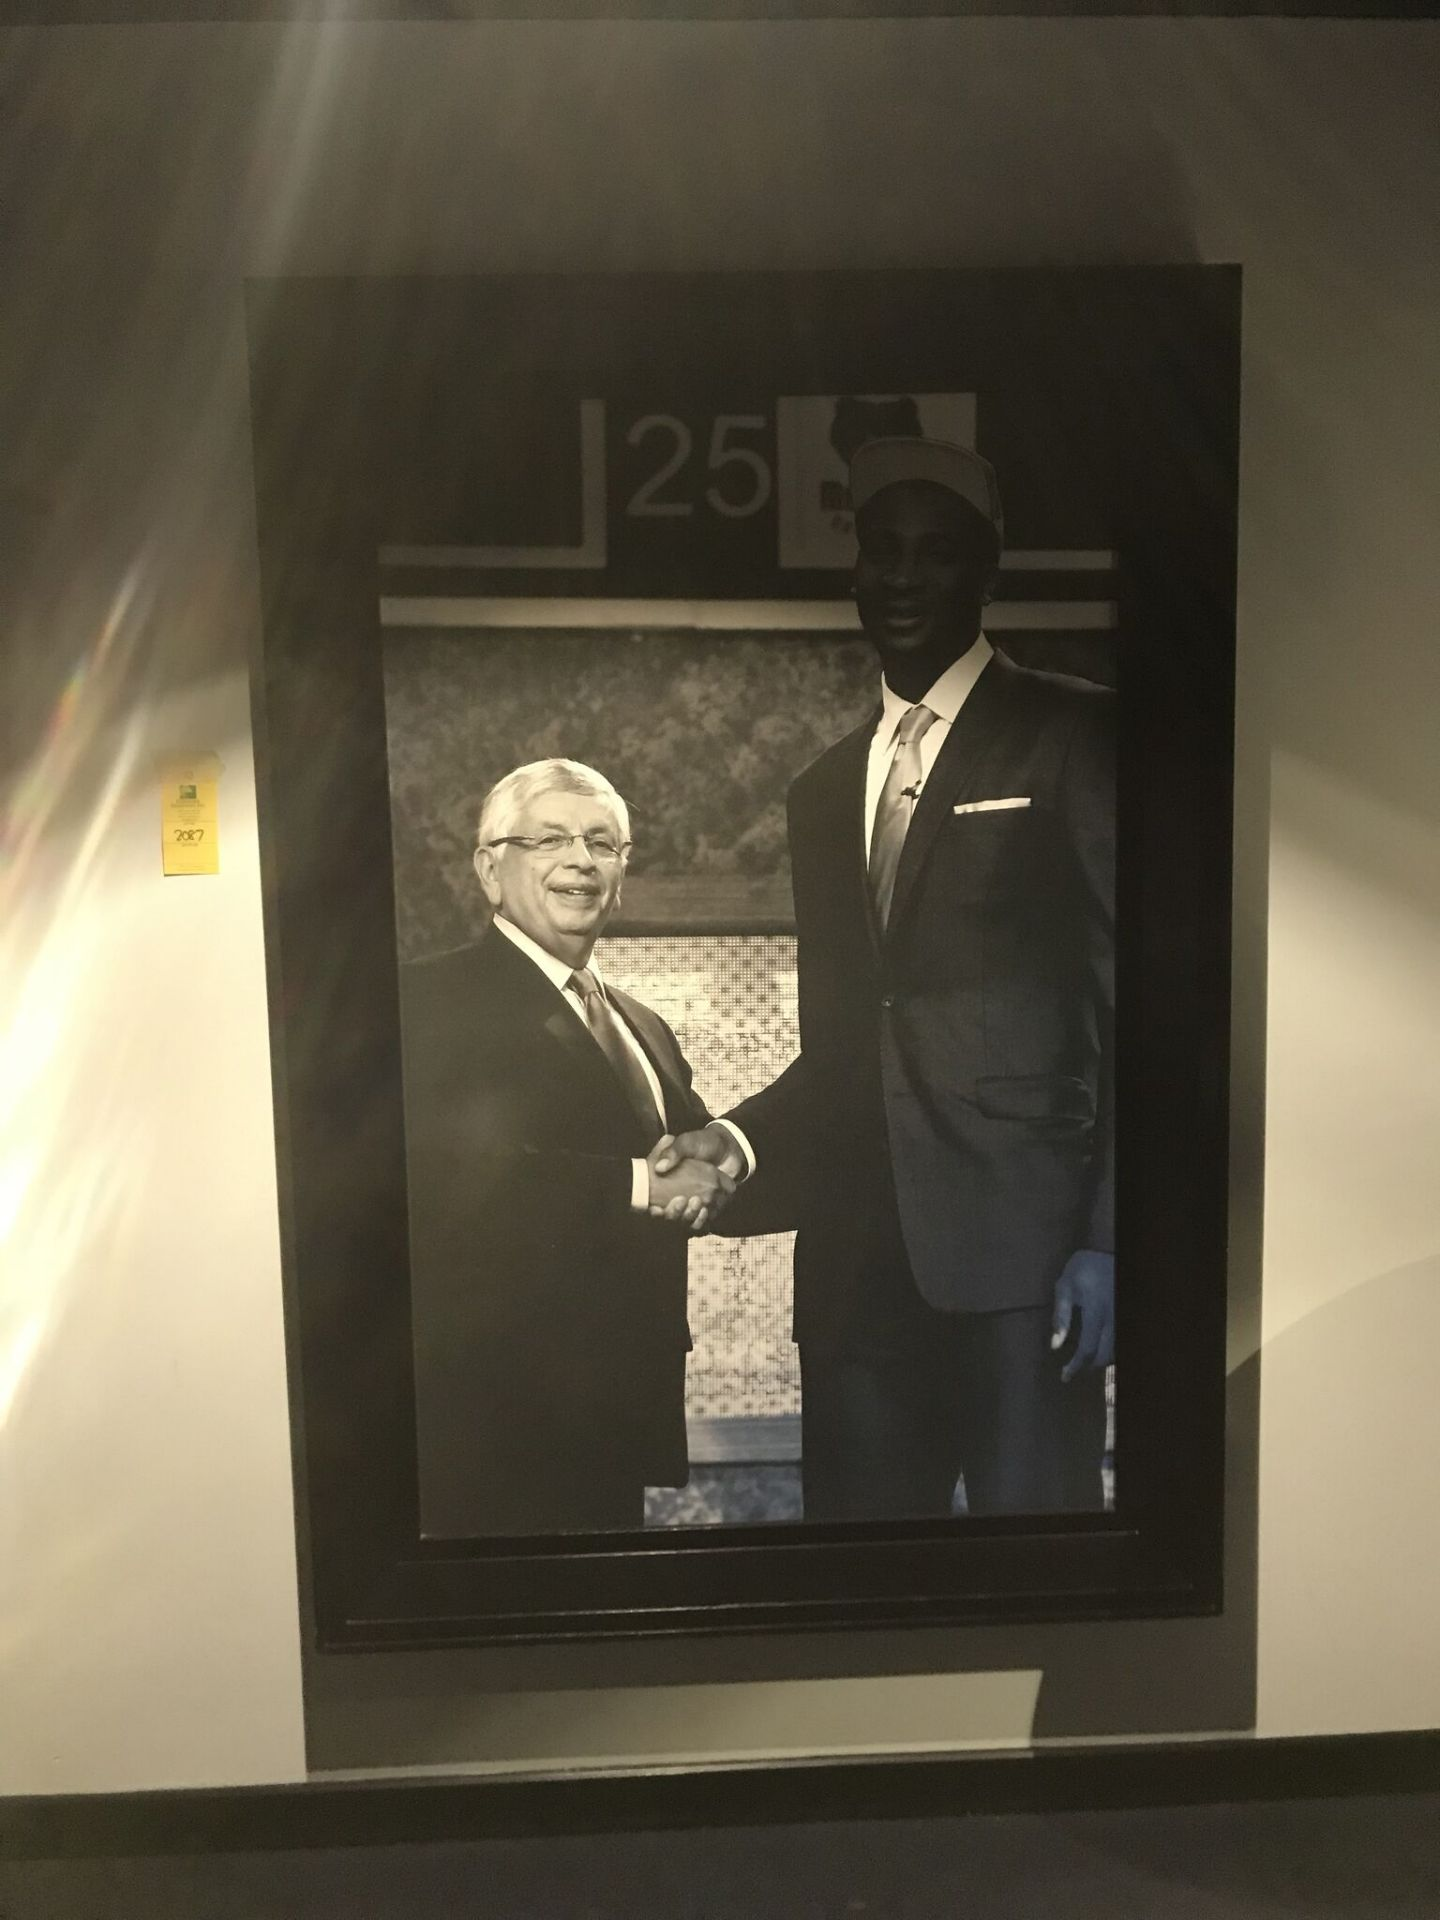 Lot 2087 - Andre Drummond & David Stern at NBA Draft , Location: 2nd Floor Executives Club ***Note from